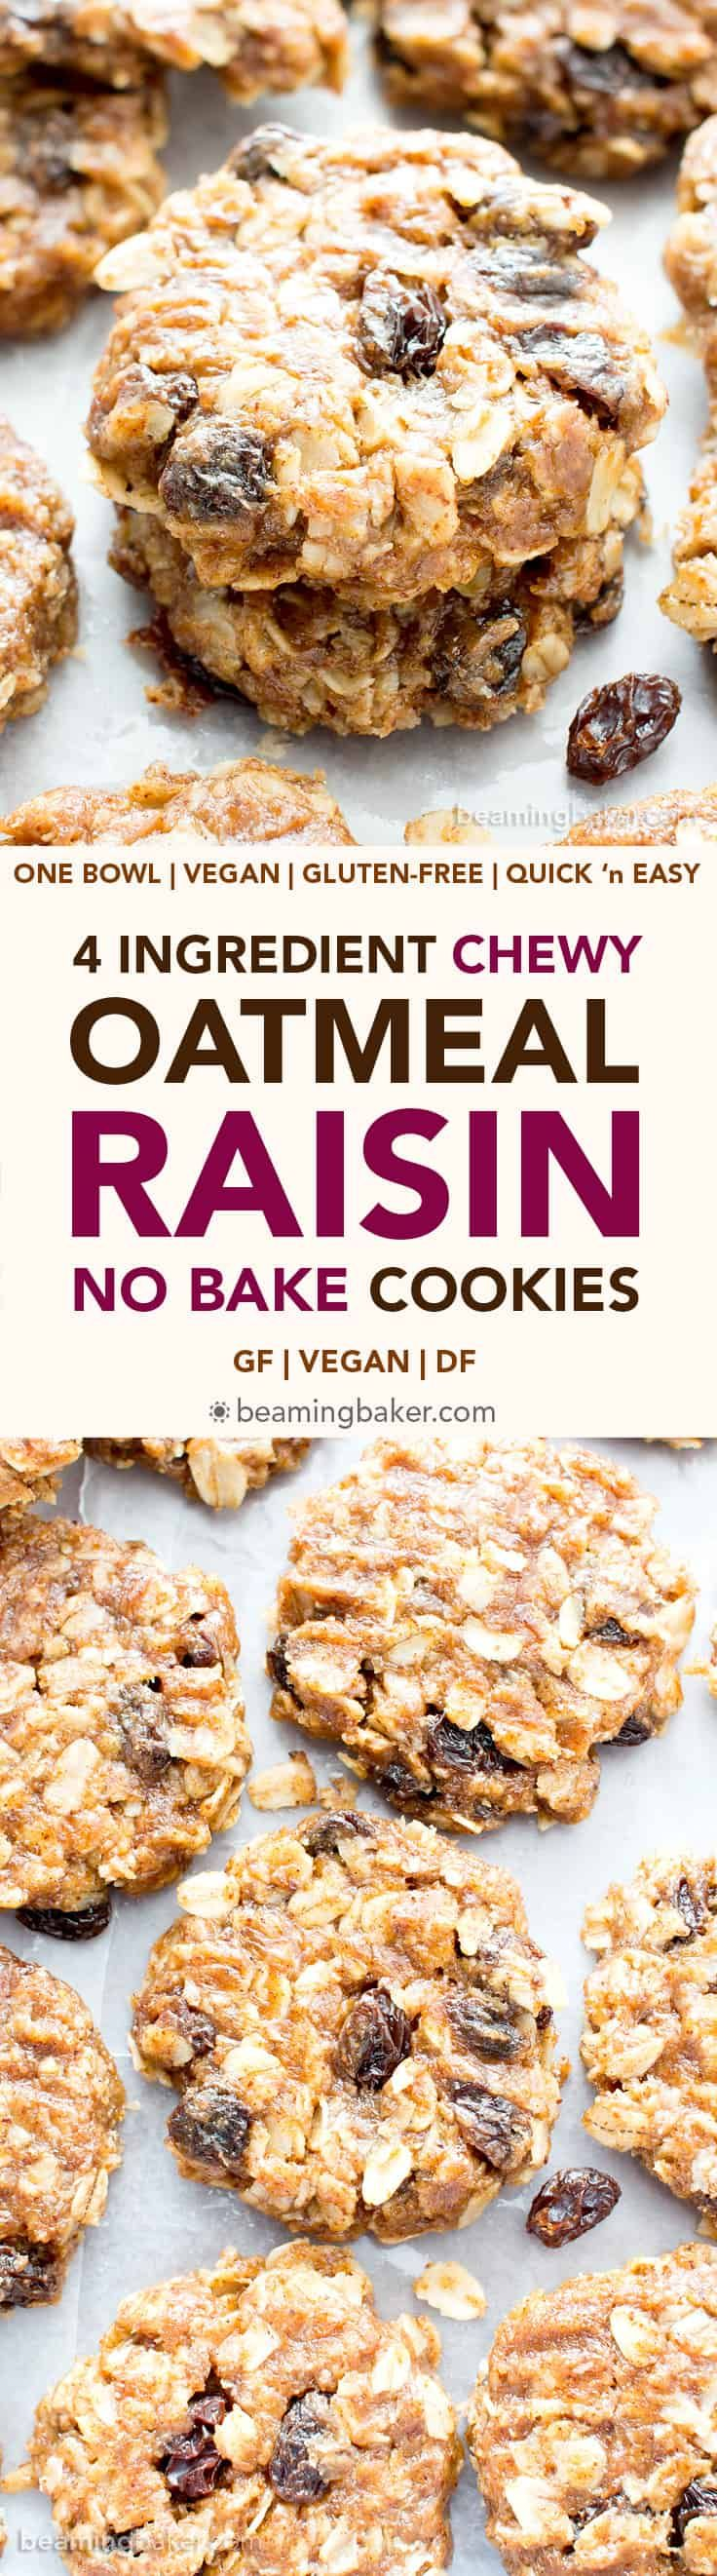 4 Ingredient No Bake Chewy Oatmeal Raisin Cookies (V, GF): an easy recipe for delightfully chewy no bake cookies bursting with raisins and cinnamon flavor!